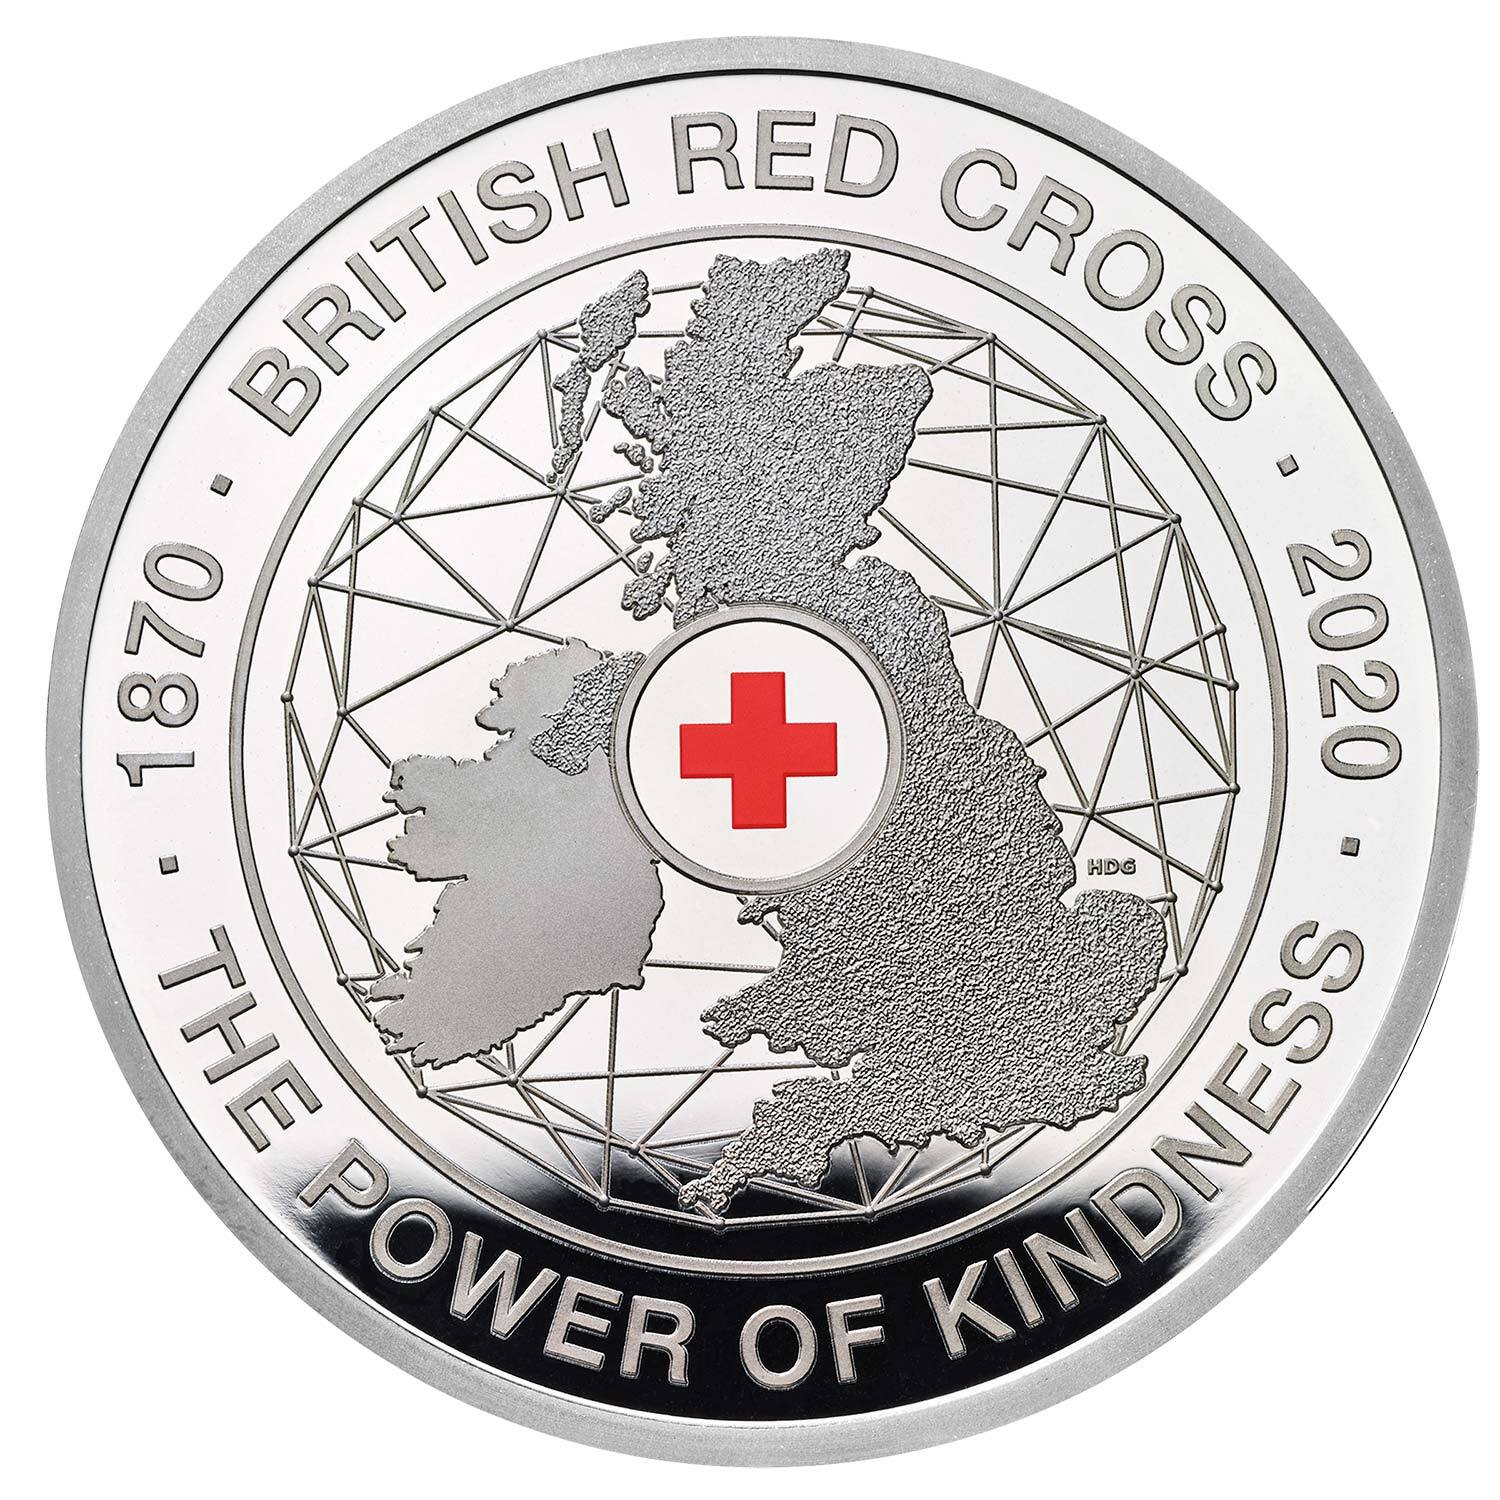 2020 £5 150th Anniversary of the British Red Cross Silver Proof Coin